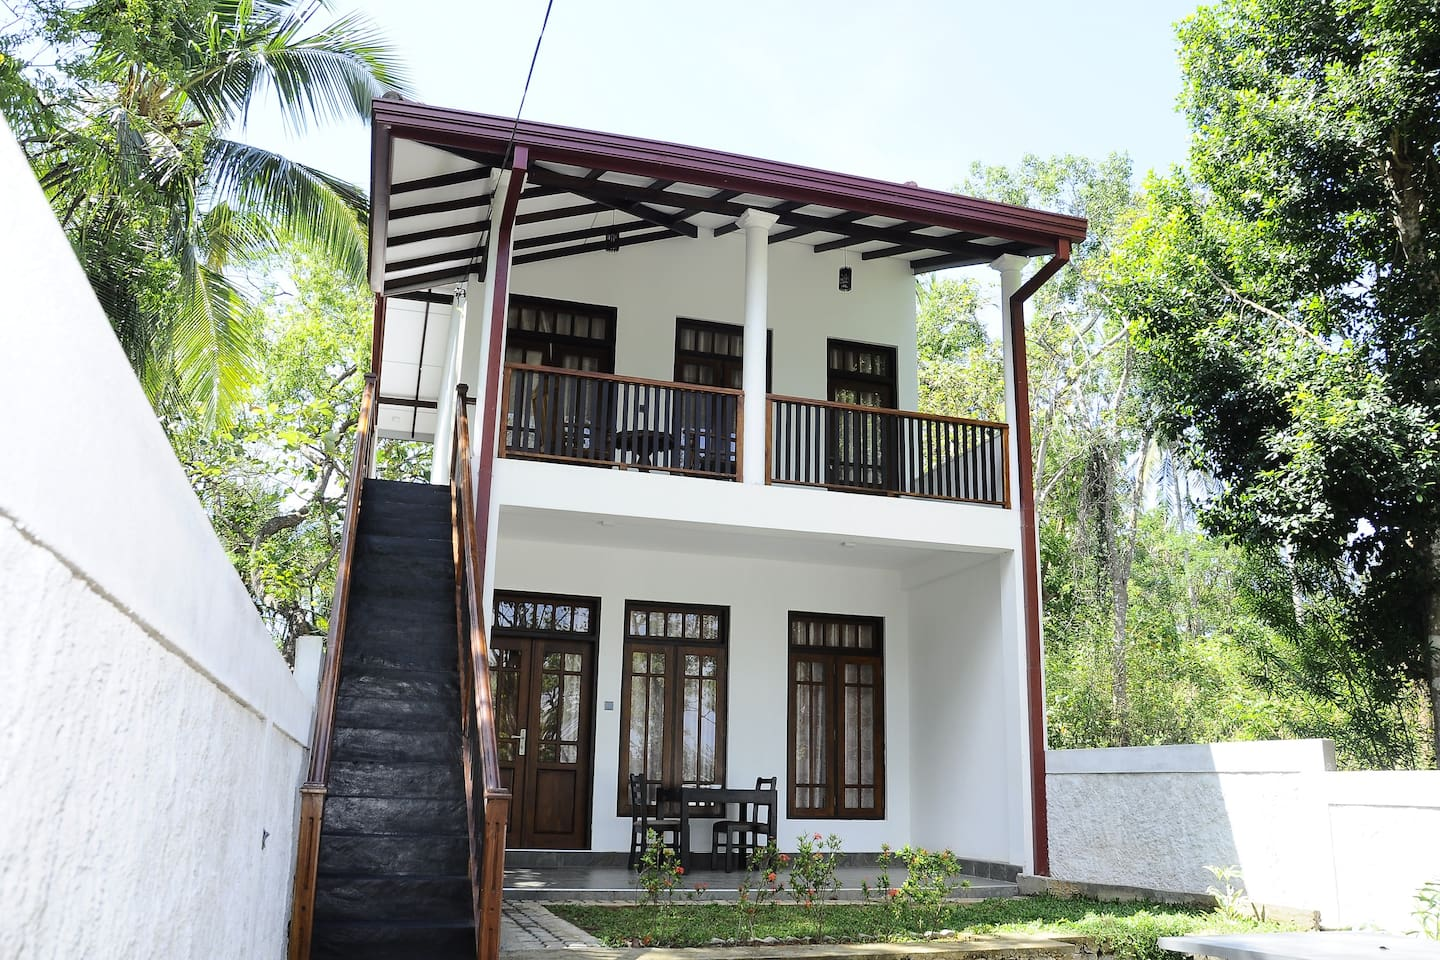 AMOUR AT TURTLE BEACH, REKAWA, SRI LANKA, PRIVATE HOUSE WITH TWO LUXURY BEDROOMS, JUST 20 METERS TO THE BEACH AND TURTLE WATCH, LOCATED IN FRONT OF THE REKAWA LAGOON.